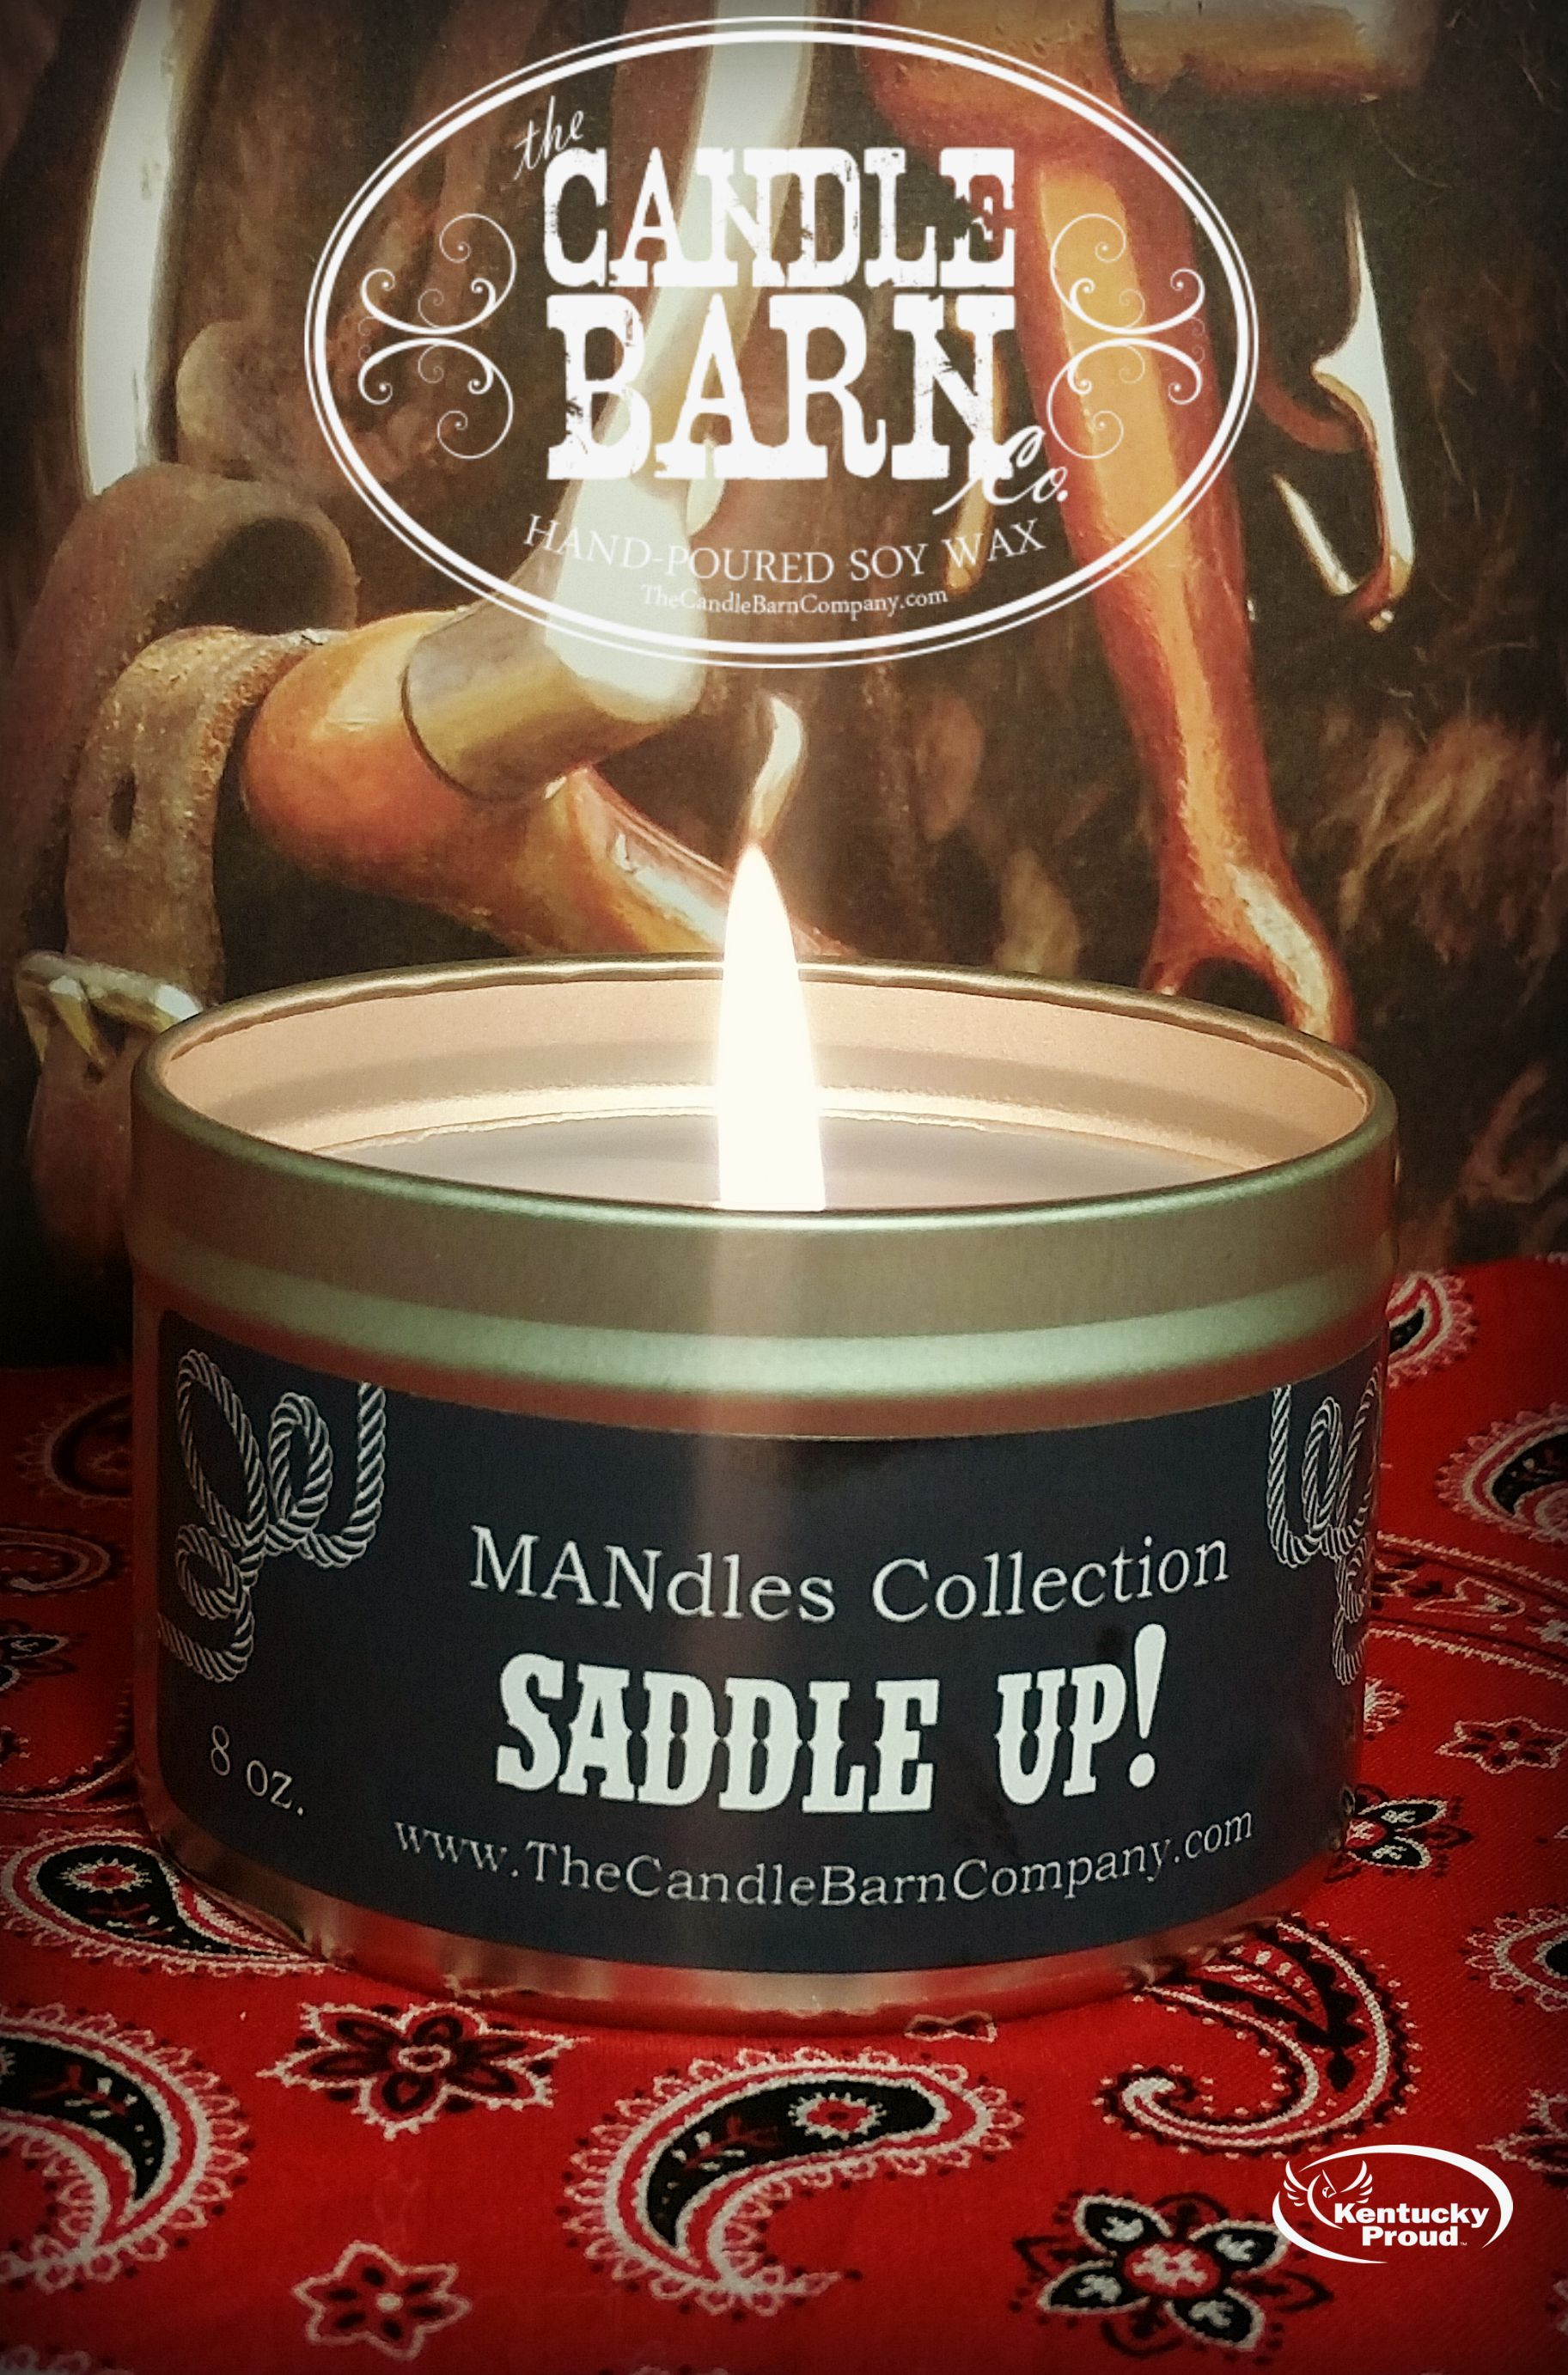 MANdles Collection - Saddle Up!  Smells just like a saddle shop or an overstuffed leather sofa.  Perfect for any man cave.